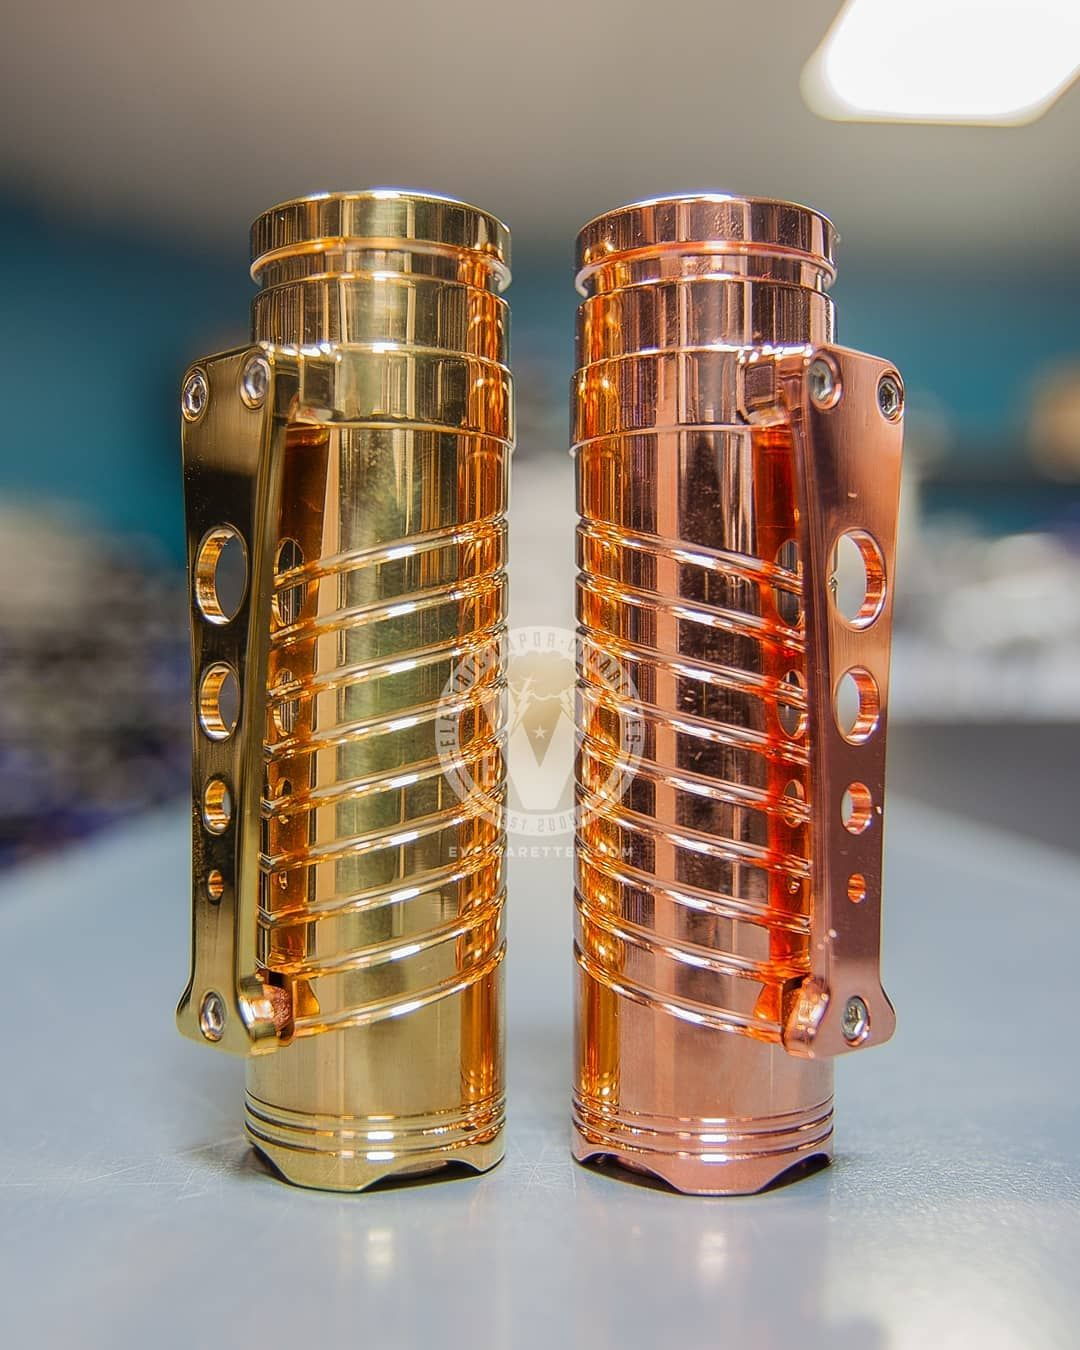 Schrauben Billiger The Grip 20700 Mech Mod By Immortal Modz Armageddon Mfg Is Now